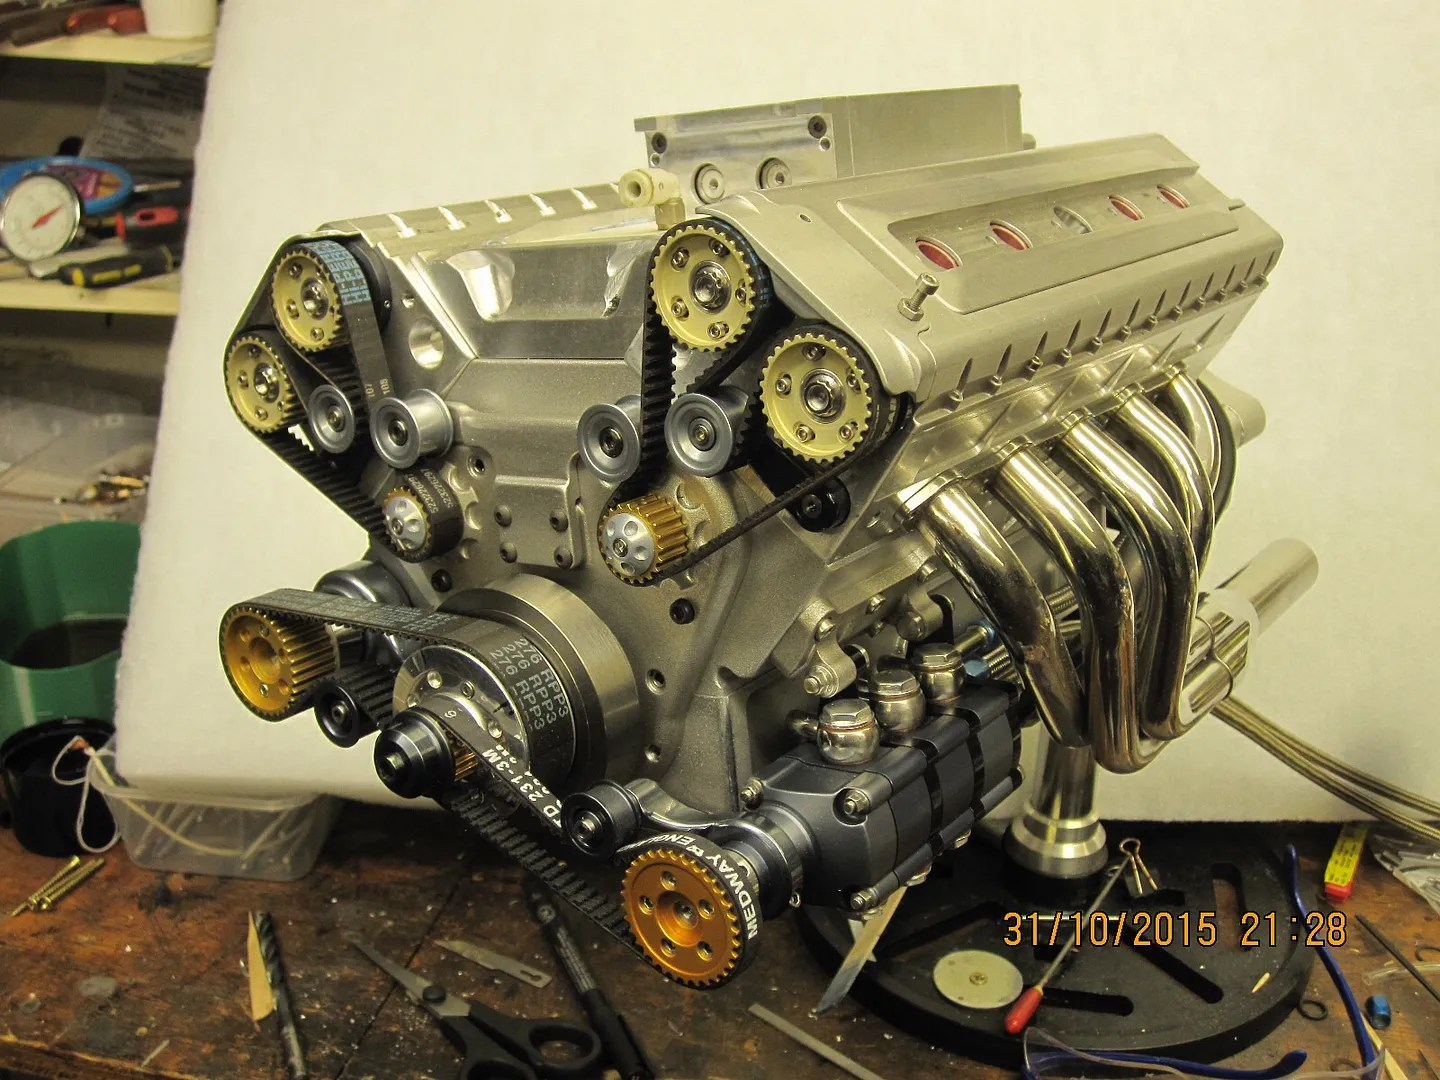 Supercharged Fuel Injected V10 Engine At 13 Scale Hackaday